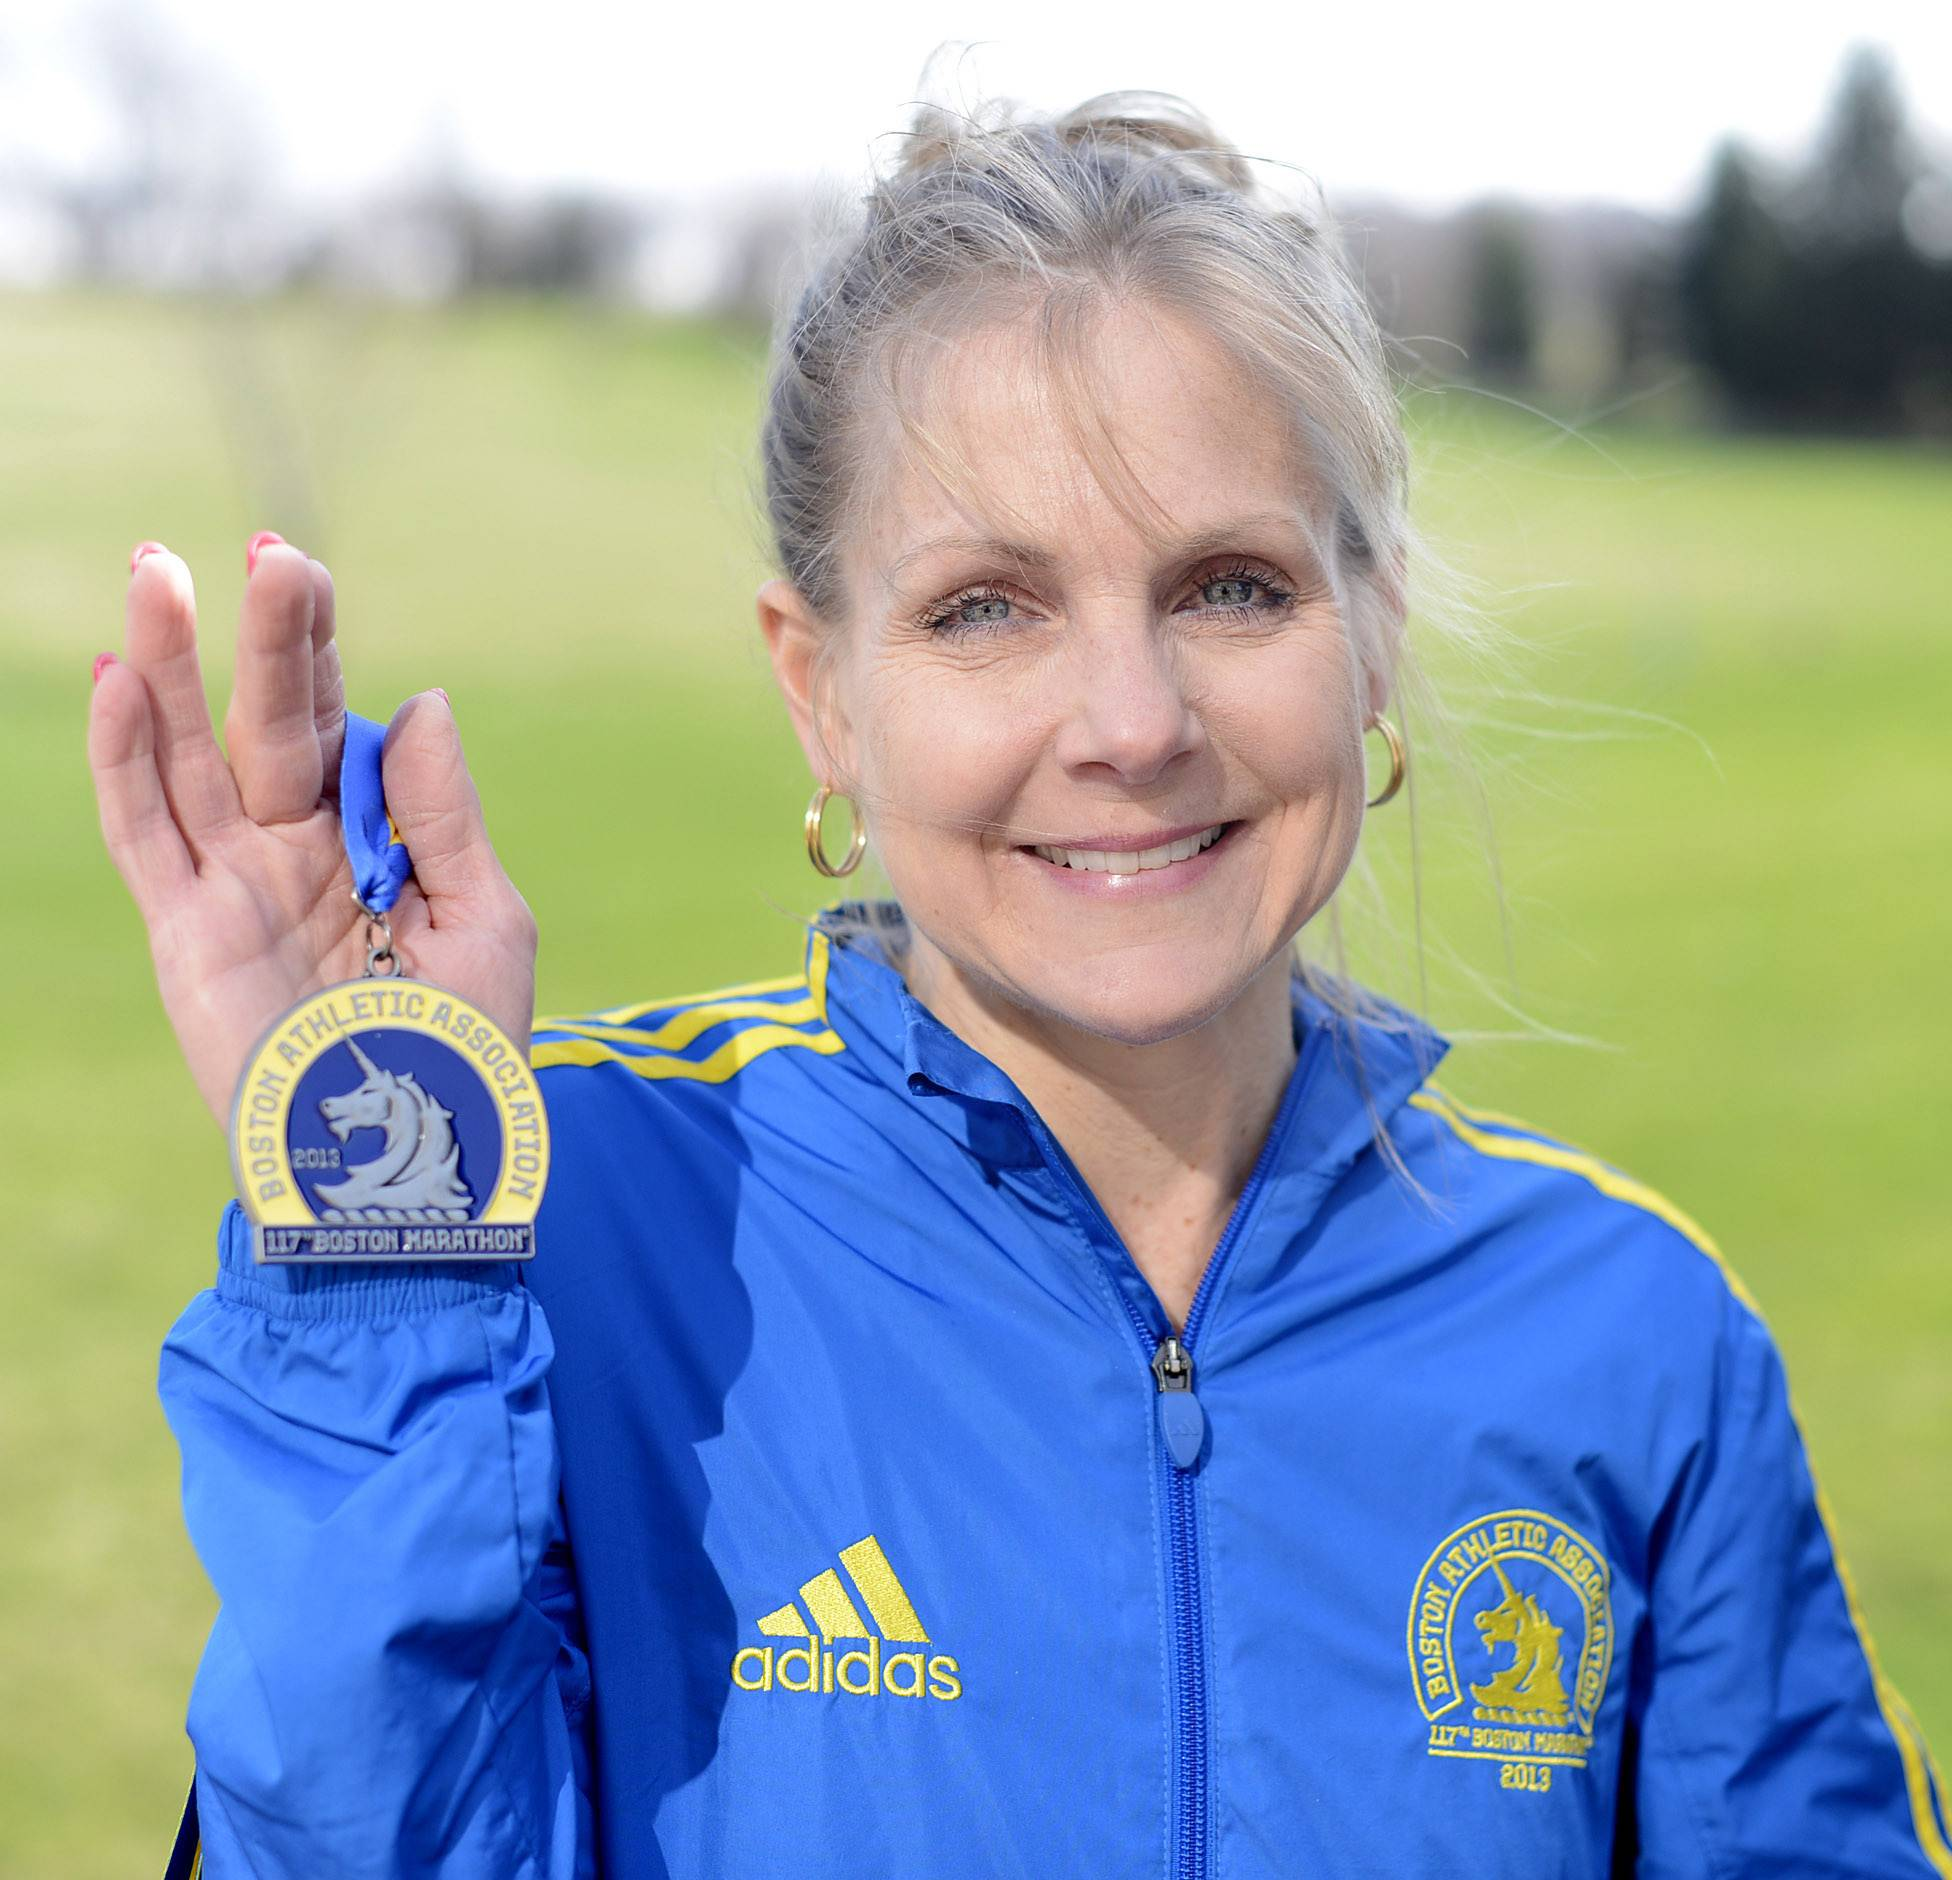 Sue Gruner was crossing the finish line in the Boston Marathon last year when the first of two terrorist bombs exploded. She said she'll be thinking about the runners and others whose lives were affected during today's race.